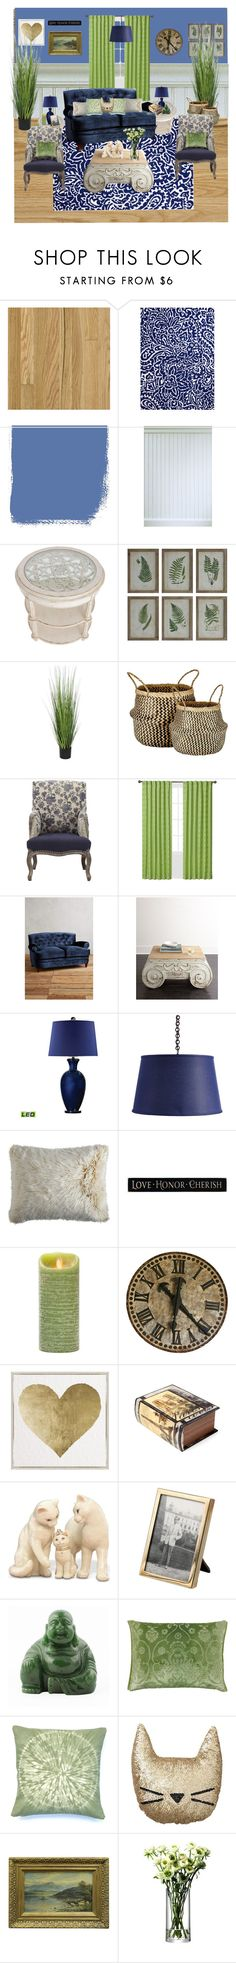 """""""Classic Navy Comfort"""" by wendy-collins-1 on Polyvore featuring interior, interiors, interior design, home, home decor, interior decorating, Jaipur, Neiman Marcus, WALL and Murmur"""